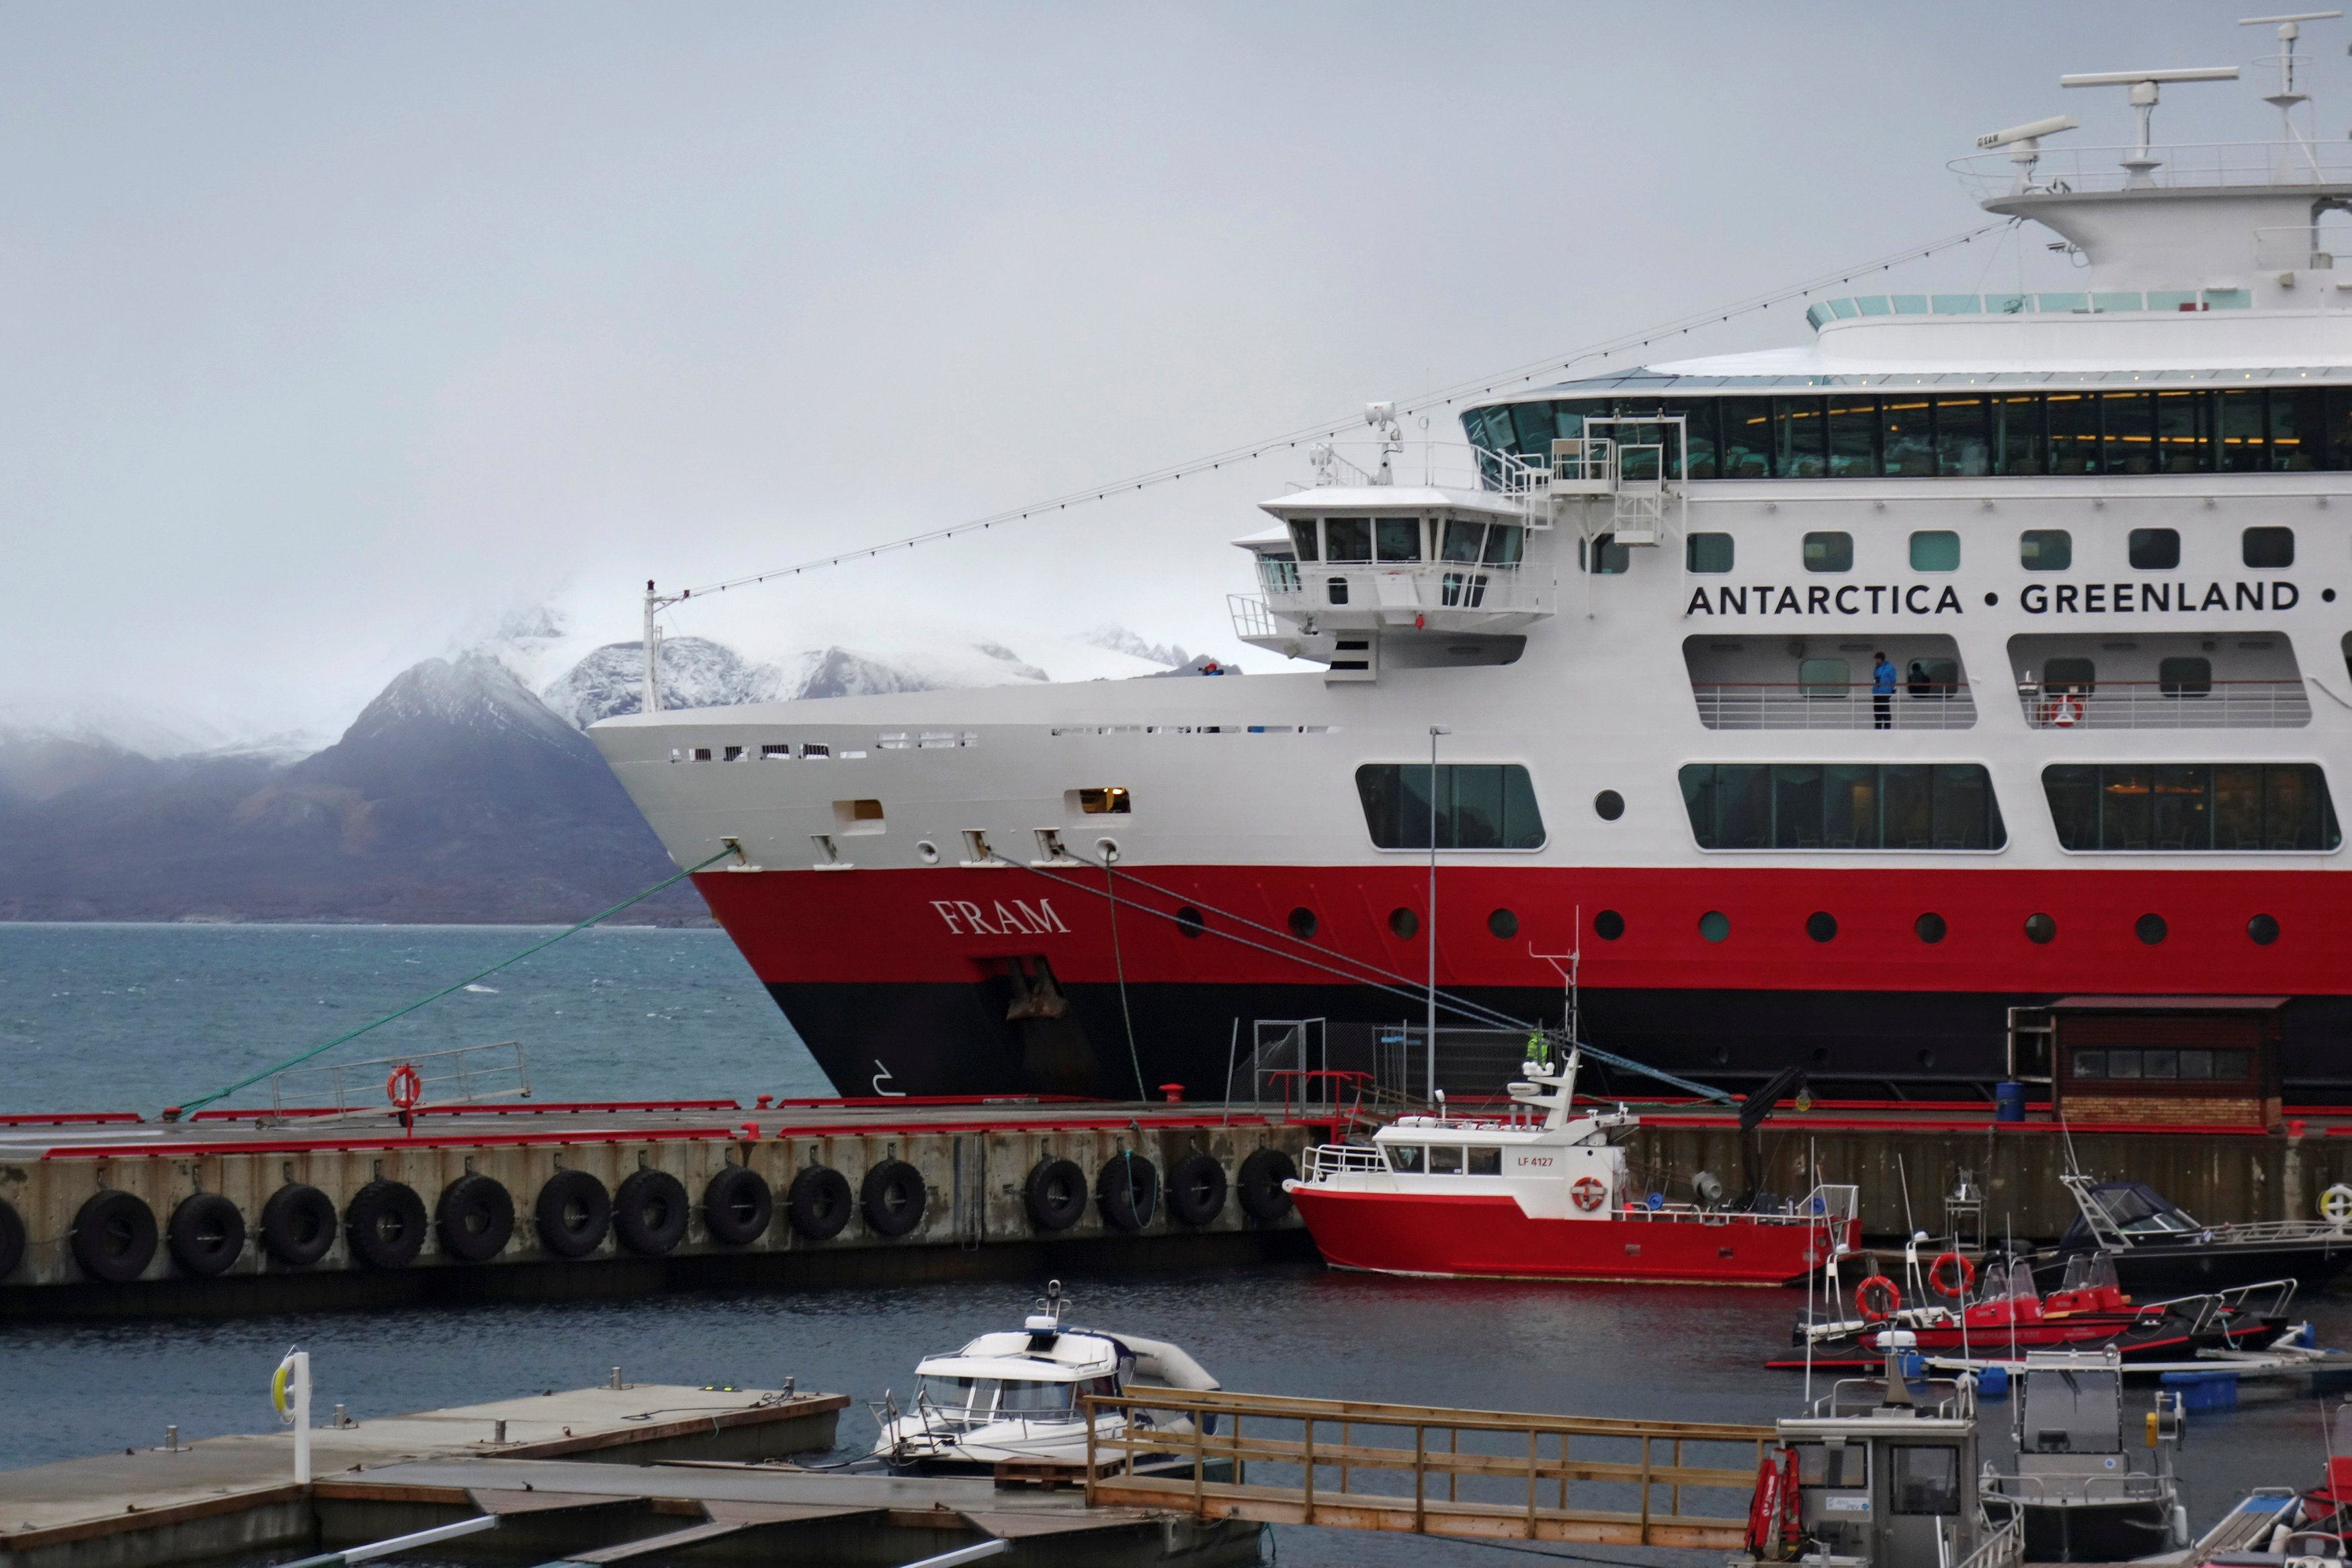 A tourist cruise ship is docked at the port of a research town Ny-Aalesund in the Arctic archipelago of Svalbard, Norway, September 21, 2016. Picture taken September 21, 2016. REUTERS/Gwladys Fouche